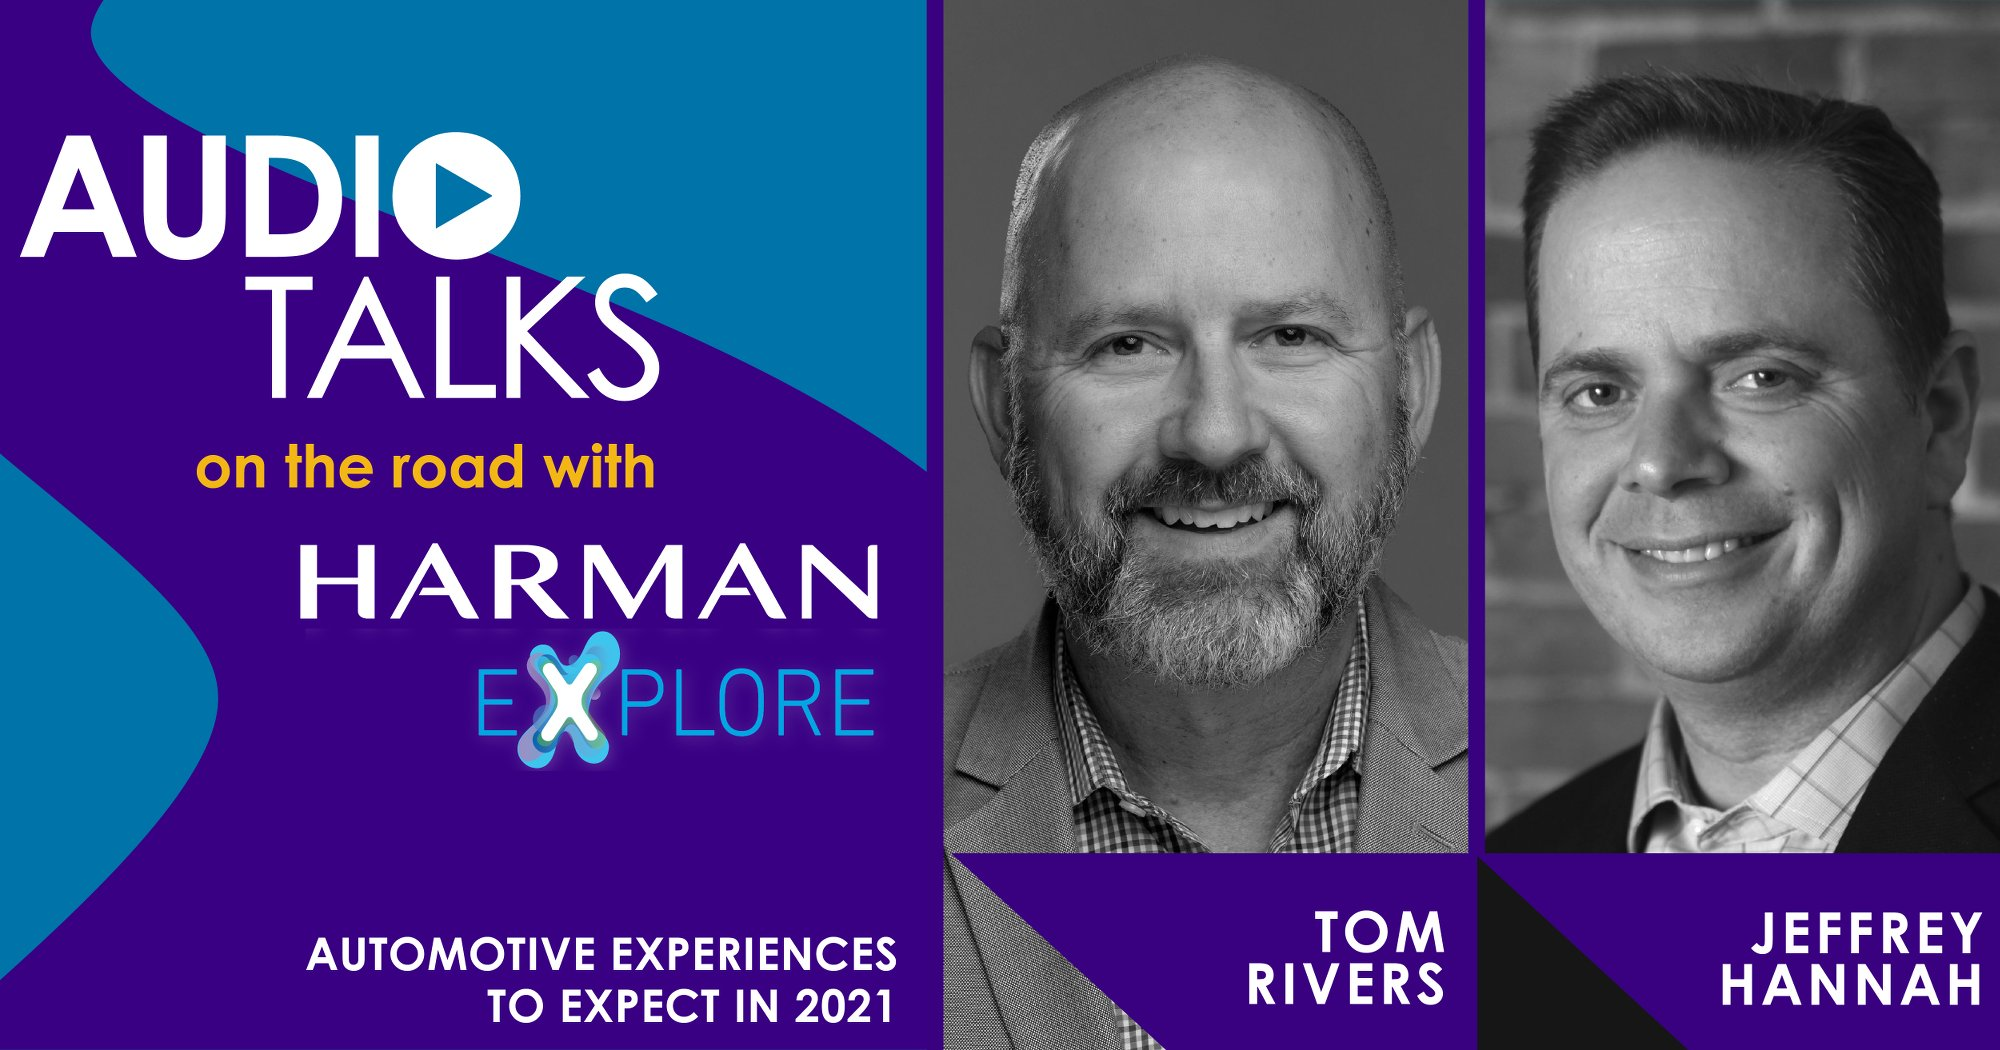 HARMAN ExPLORE: Automotive Experiences To Expect In 2021